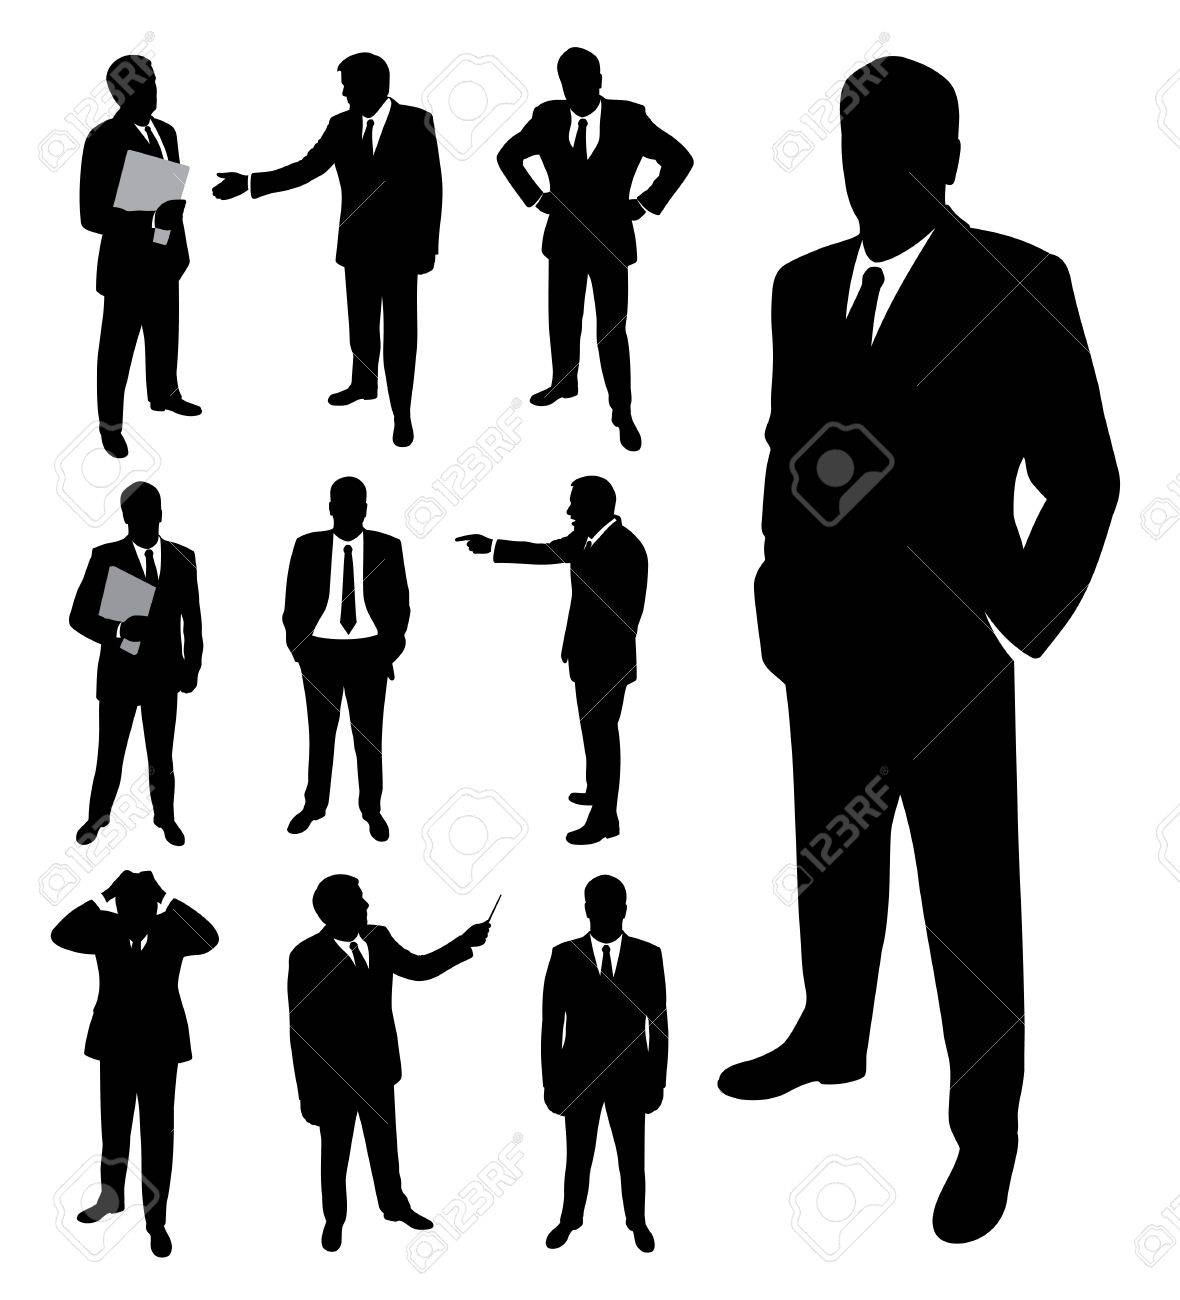 businessman silhouette royalty free cliparts vectors and stock